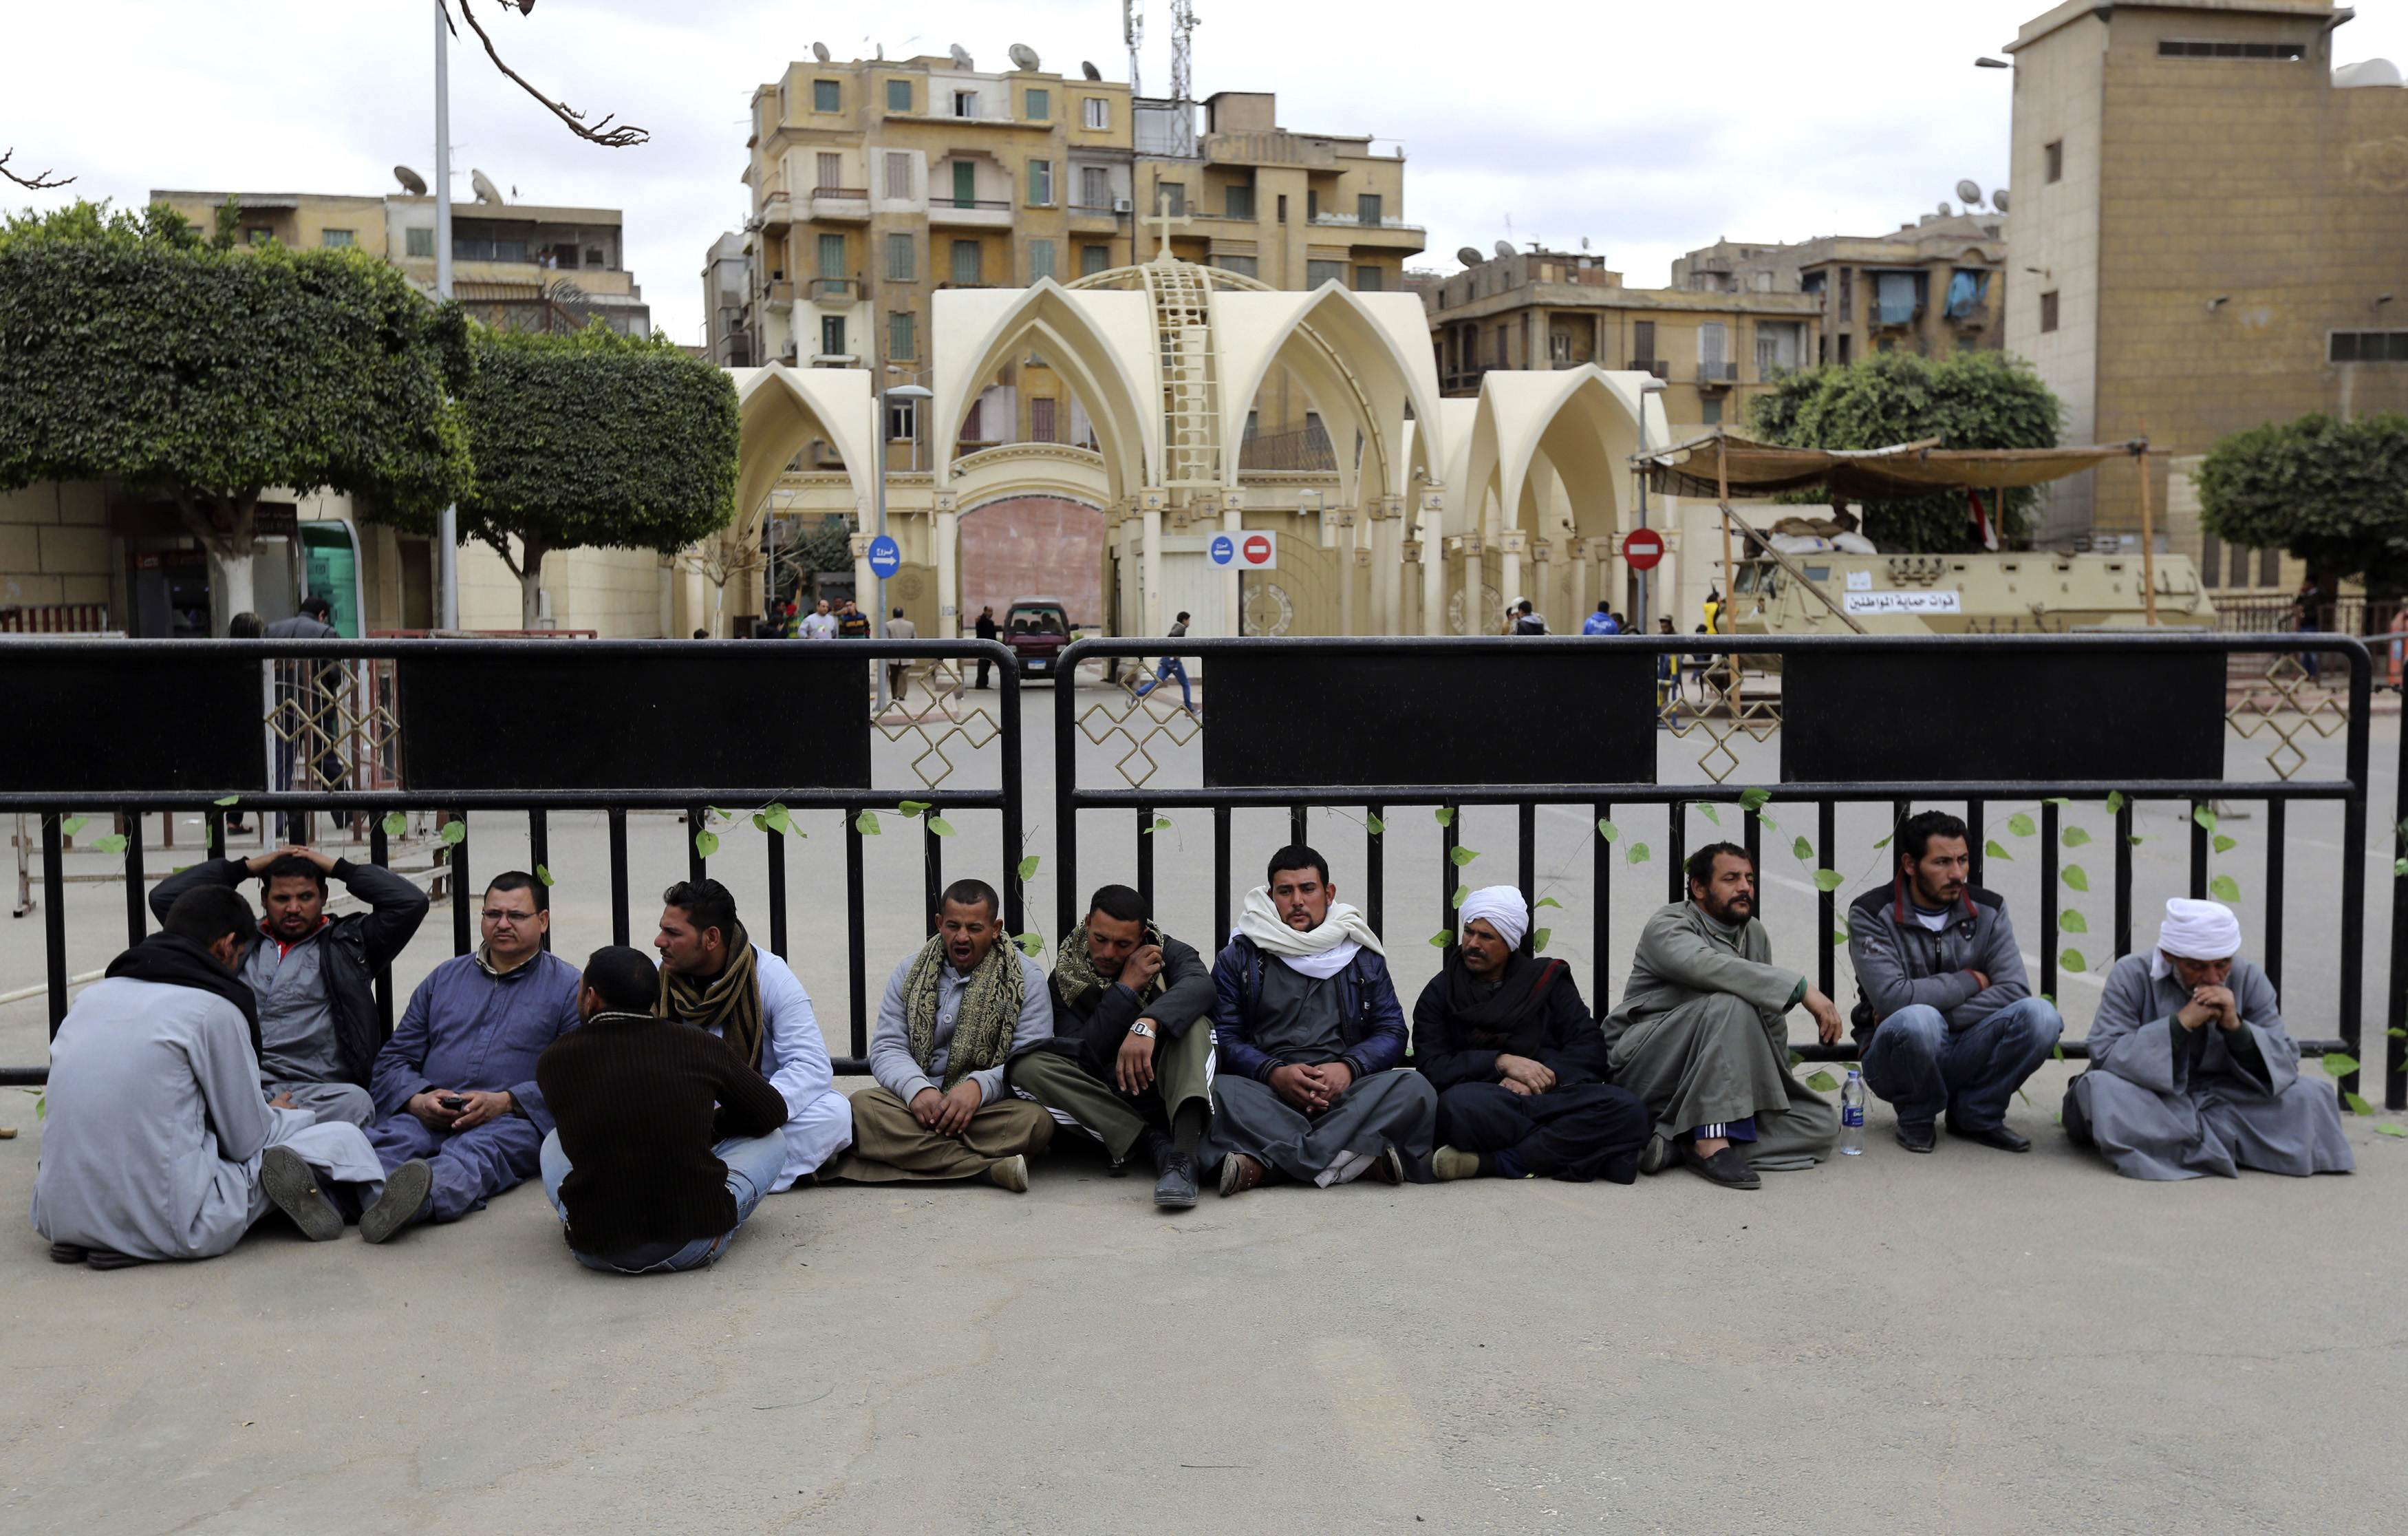 Family members of 27 Egyptian Coptic Christian workers kidnapped in the Libyan city of Sirte, take part in a sit-in inside the compound of Saint Mark's Coptic Orthodox Cathedral to call for the release of their relatives, in Cairo.